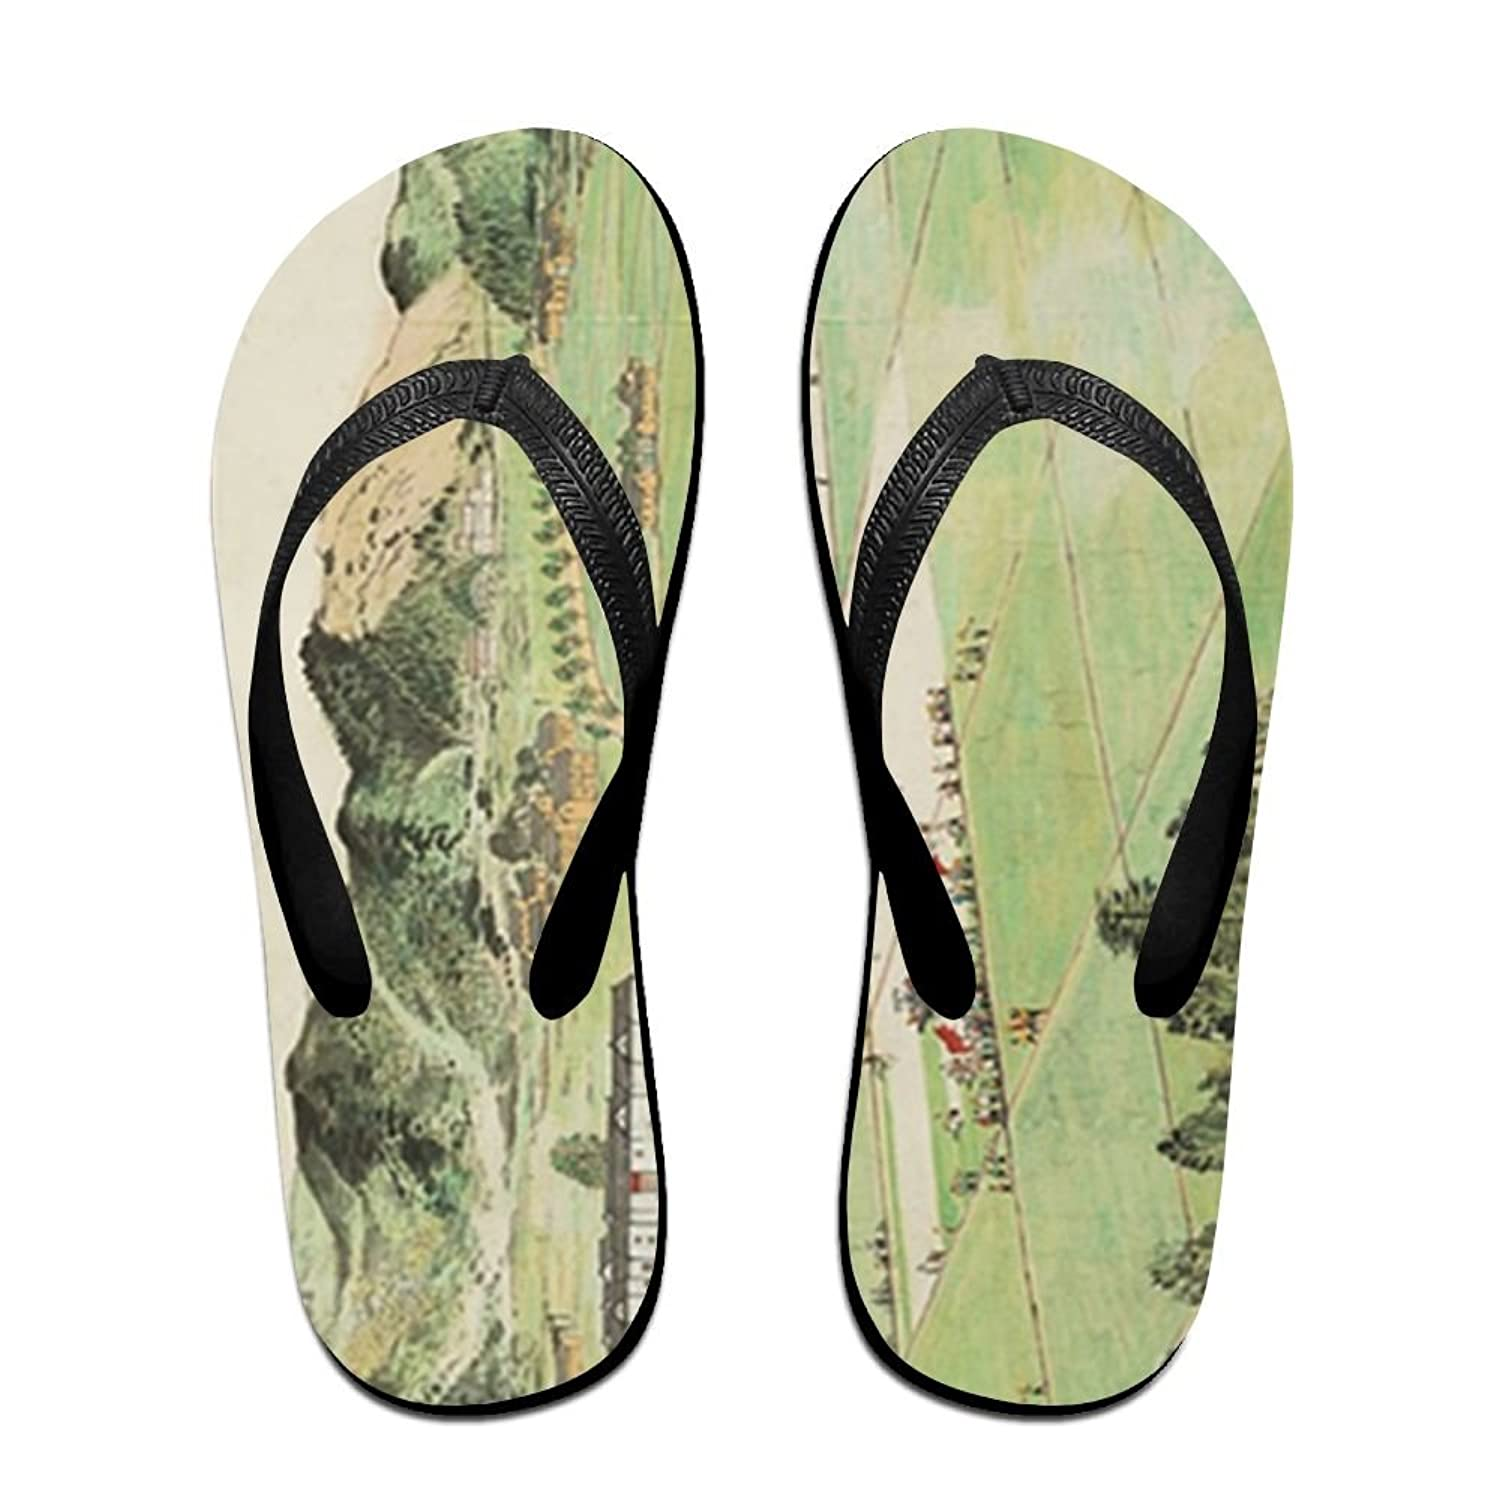 75af357b1f9a Jinqiaoguoji Customized Casual Antique Painting and Calligraphy auction  Chinese Painting Womens Sandals Beach Sandals Pool Party Slippers Flip Flops